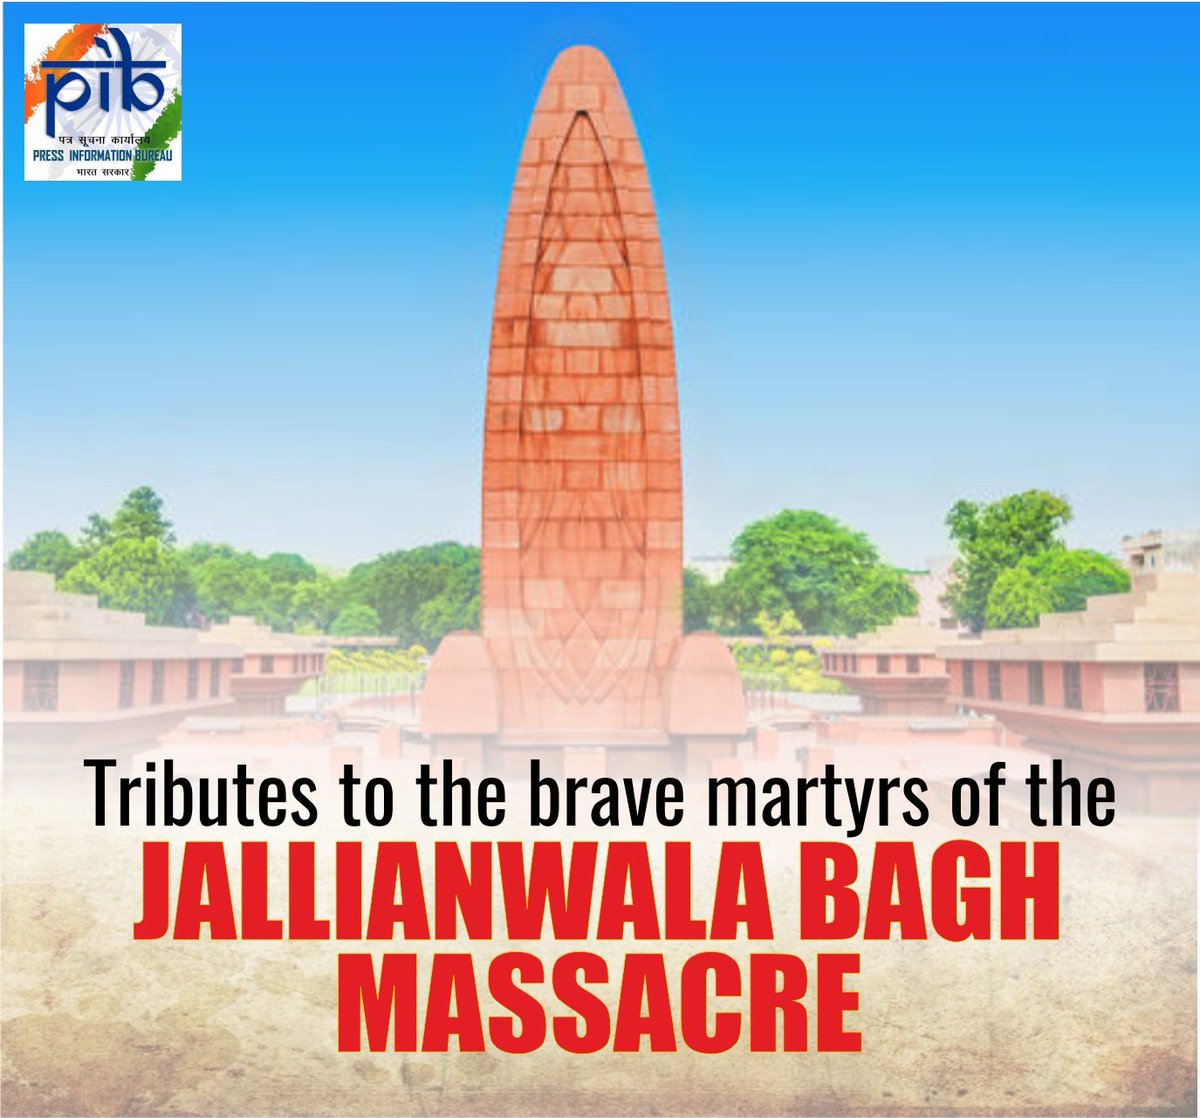 100 Years of #JallianwalaBaghMassacre today, Nation pays tribute to the brave martyrs of #JallianwalaBaghMassacre   #JallianwalaBaghCentenary